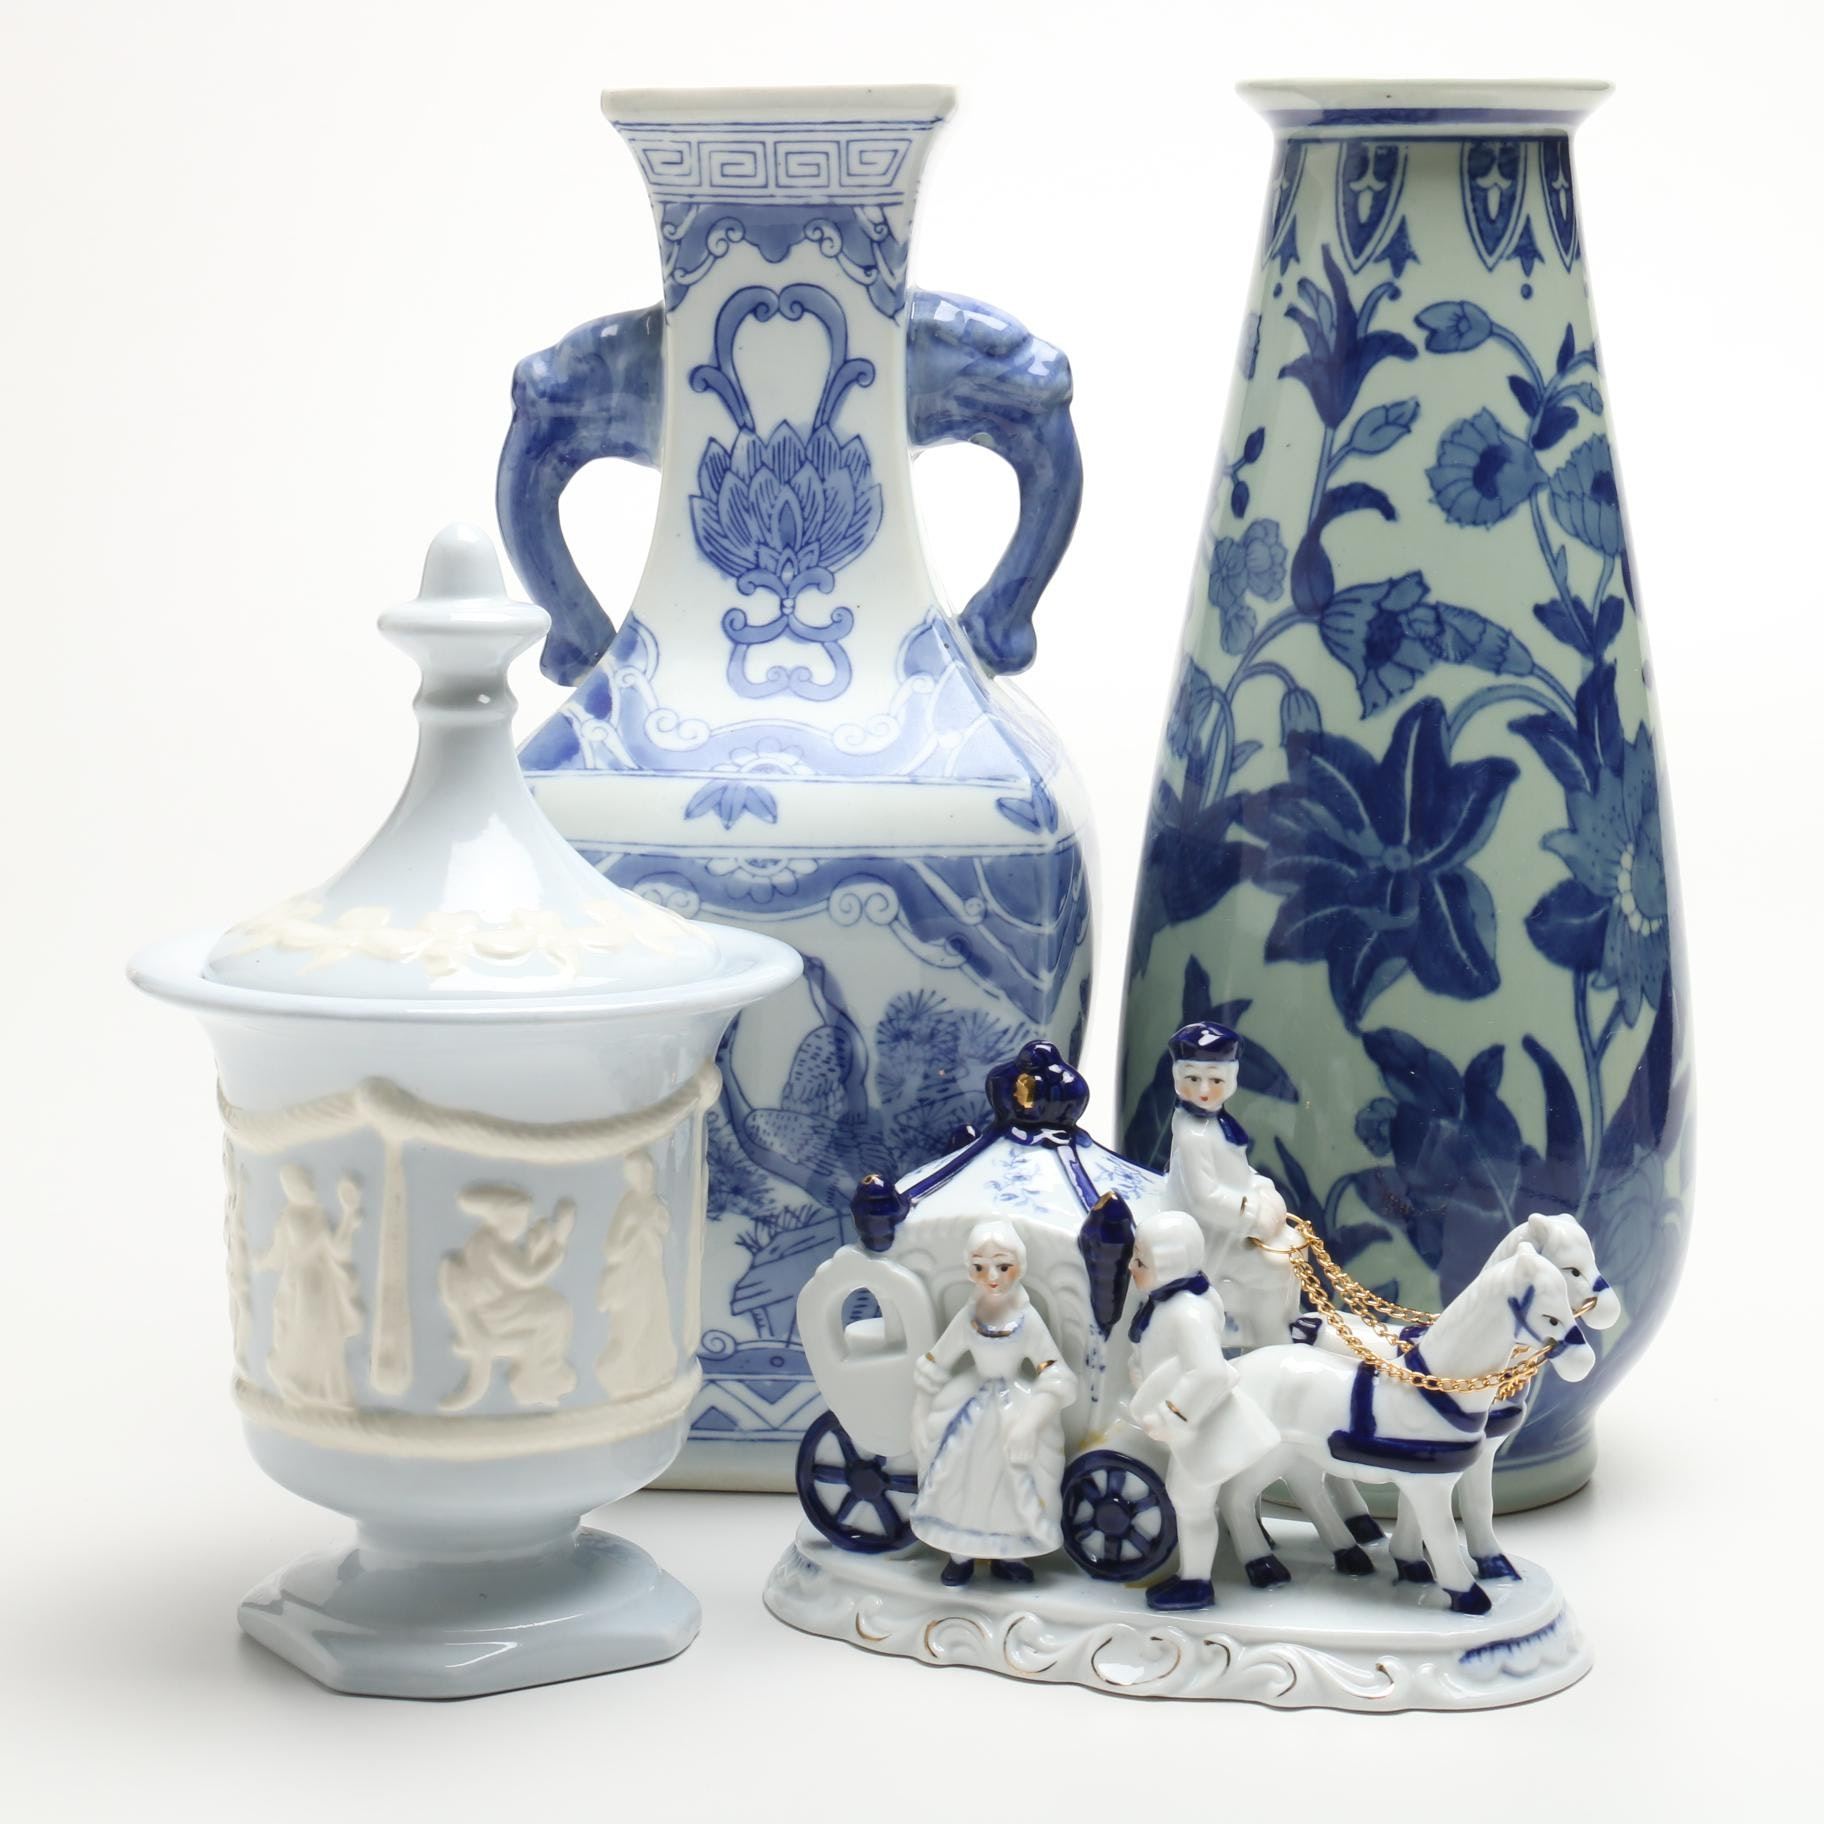 Blue and White Porcelain and Pottery